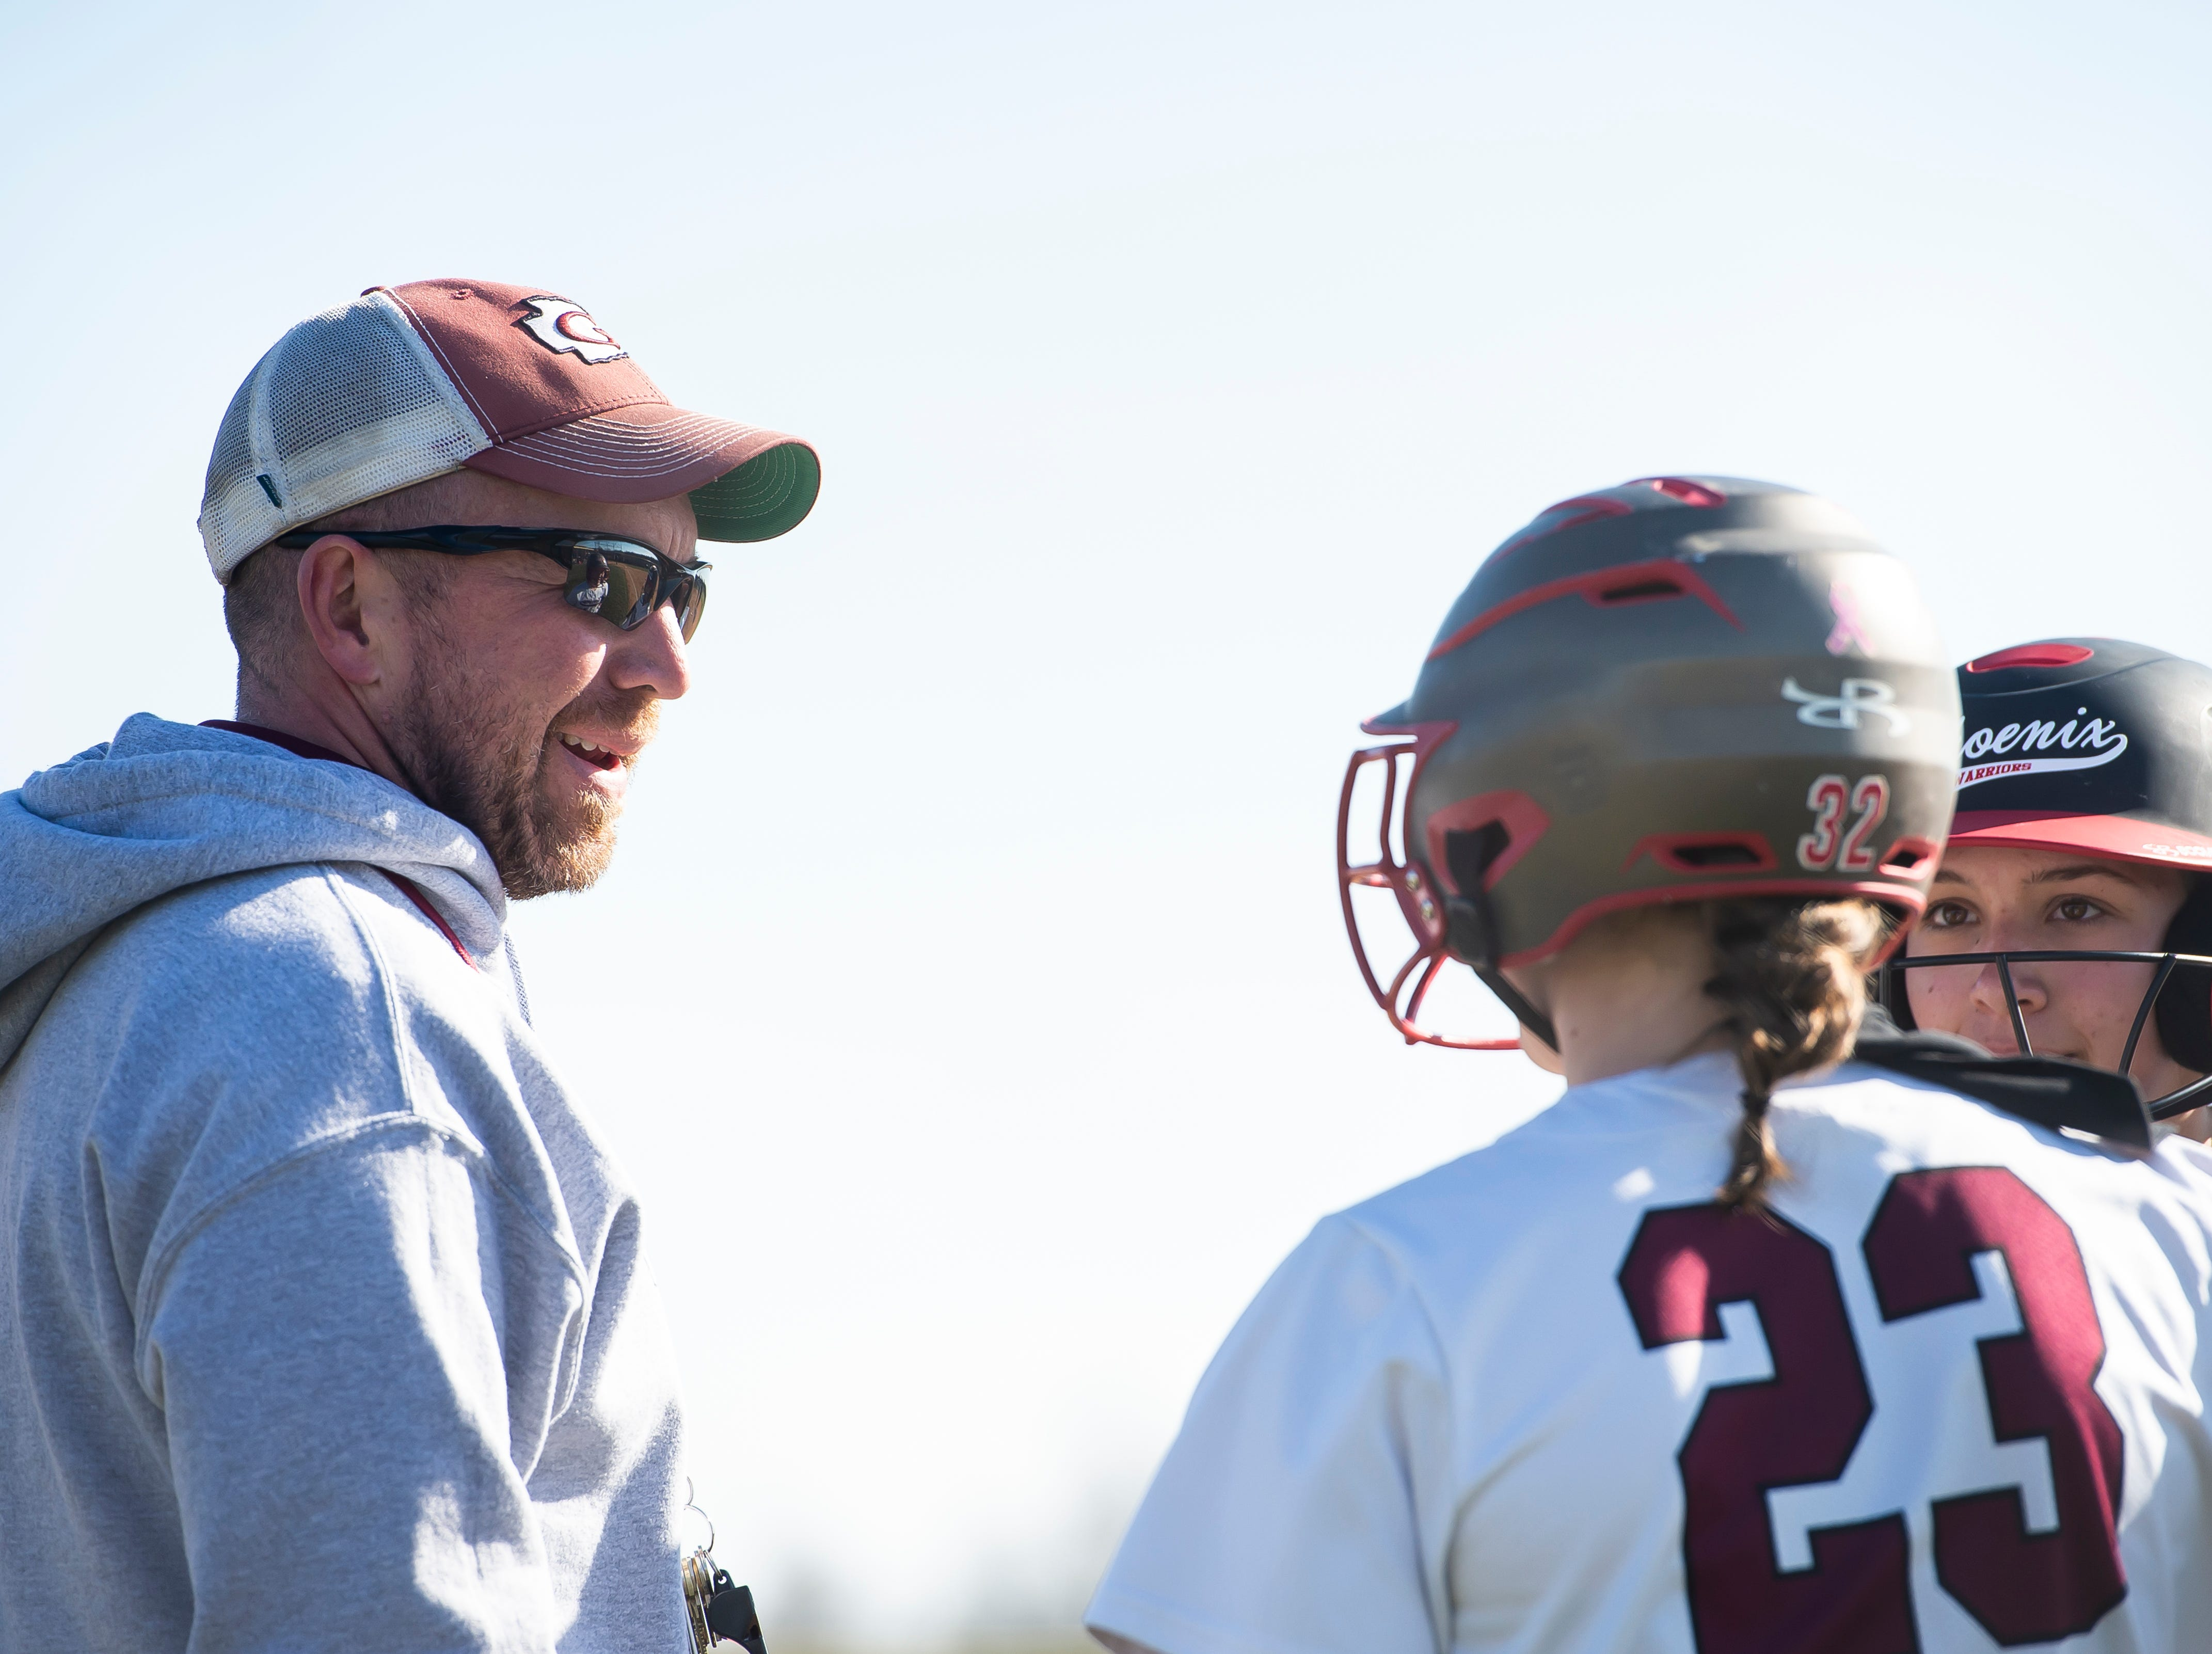 Gettysburg head coach Max Laing speaks with Rachel Keller (23) and Kaelyn Blocher during a pause in play in a YAIAA softball game against Littlestown on Monday, April 1, 2019. The Bolts won 10-4.